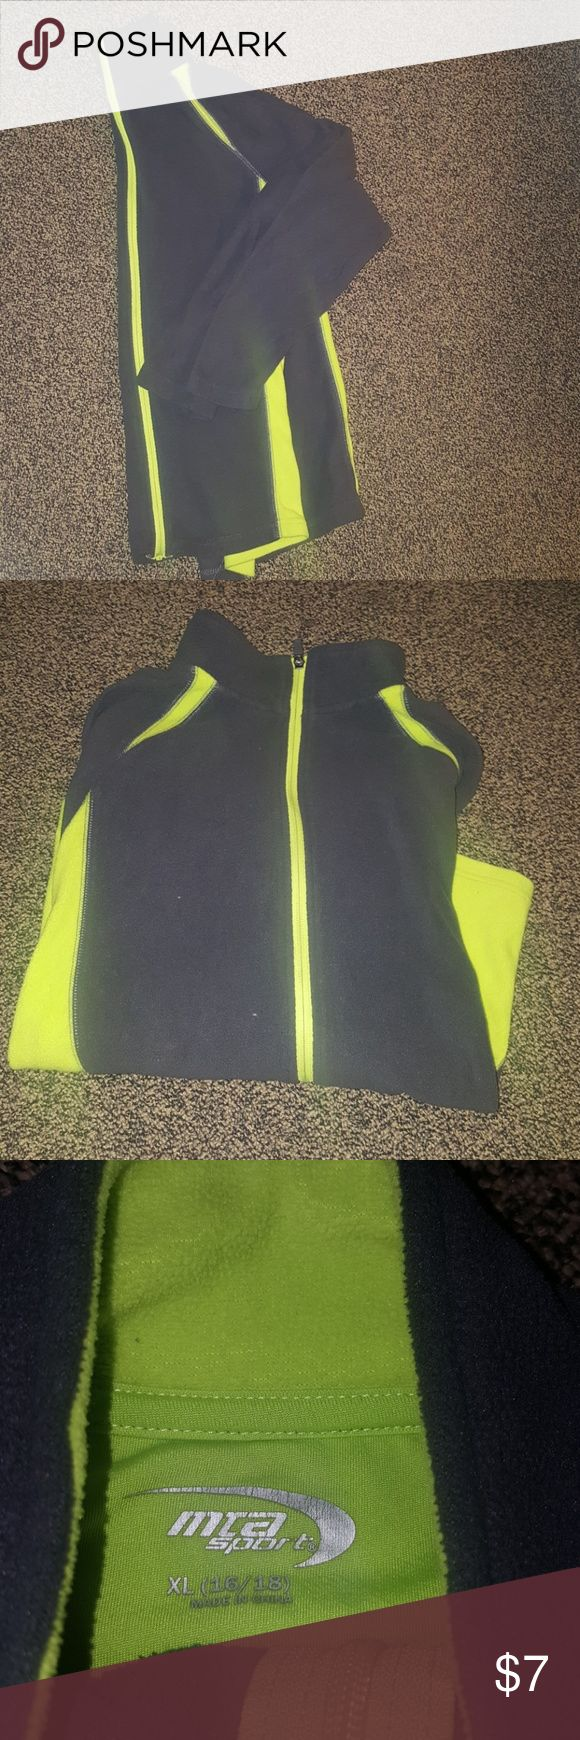 Lightweight zip up fleece Grey & neon yellow zip up fleece jacket.  Perfect for the upcoming fall weather!  EUC!  Size xl(16/18) mta pro Shirts & Tops Sweatshirts & Hoodies